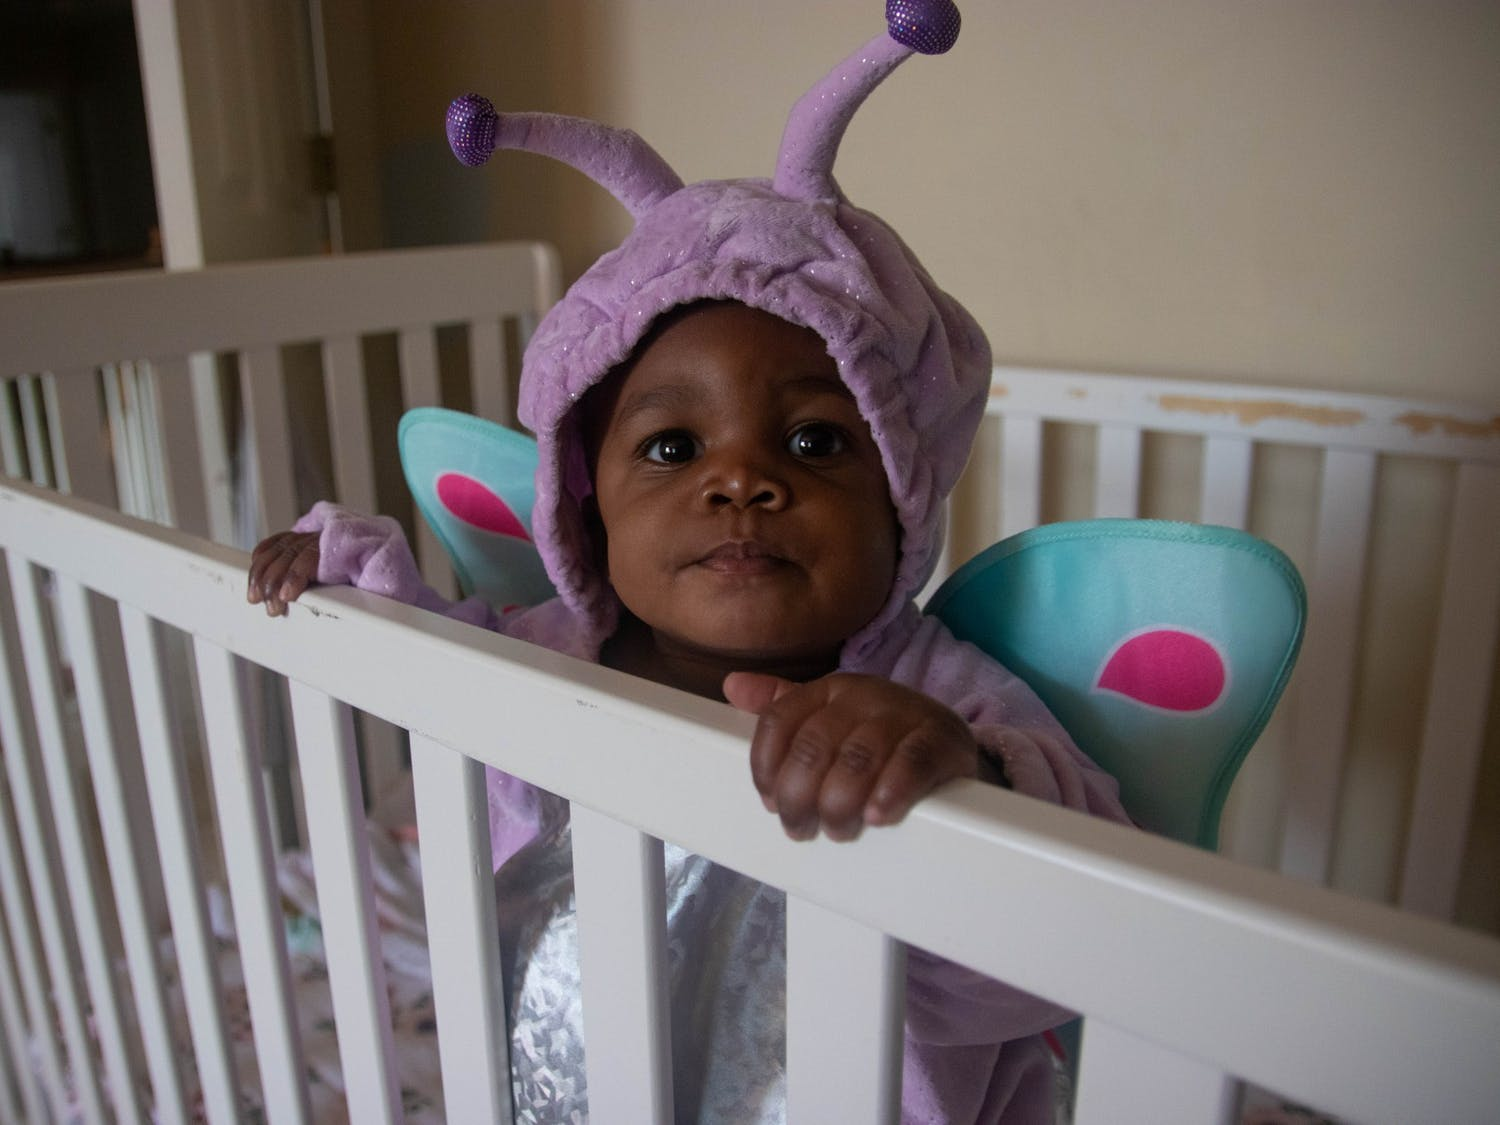 Addison Wright, 7 months old, prepares to spend her first Halloween ever at her grandparents home in Raleigh, NC on Oct. 27, 2020.